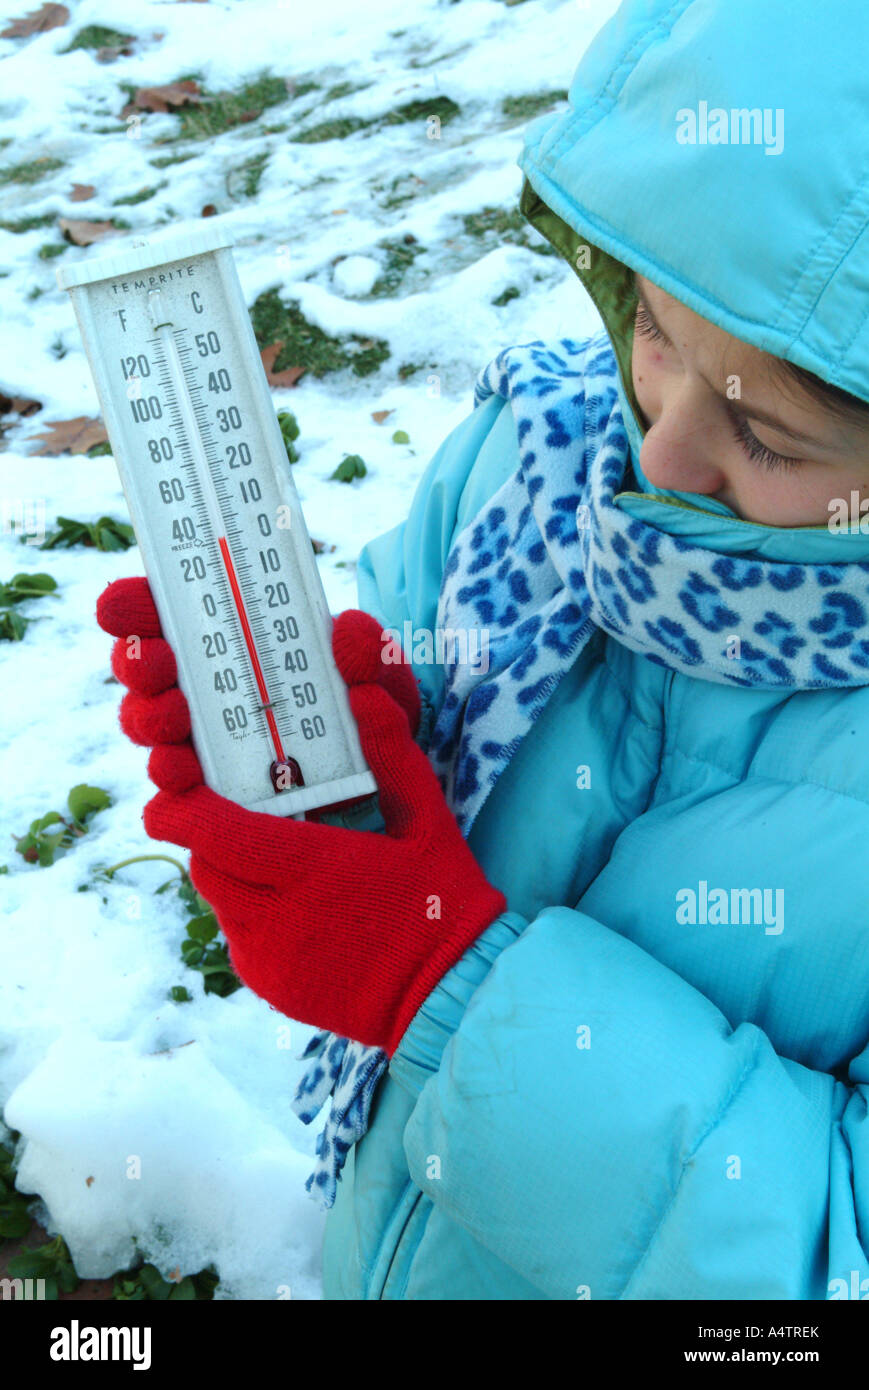 mr-10-year-old-girl-holding-an-analog-thermometer-showing-fahrenheit-A4TREK.jpg